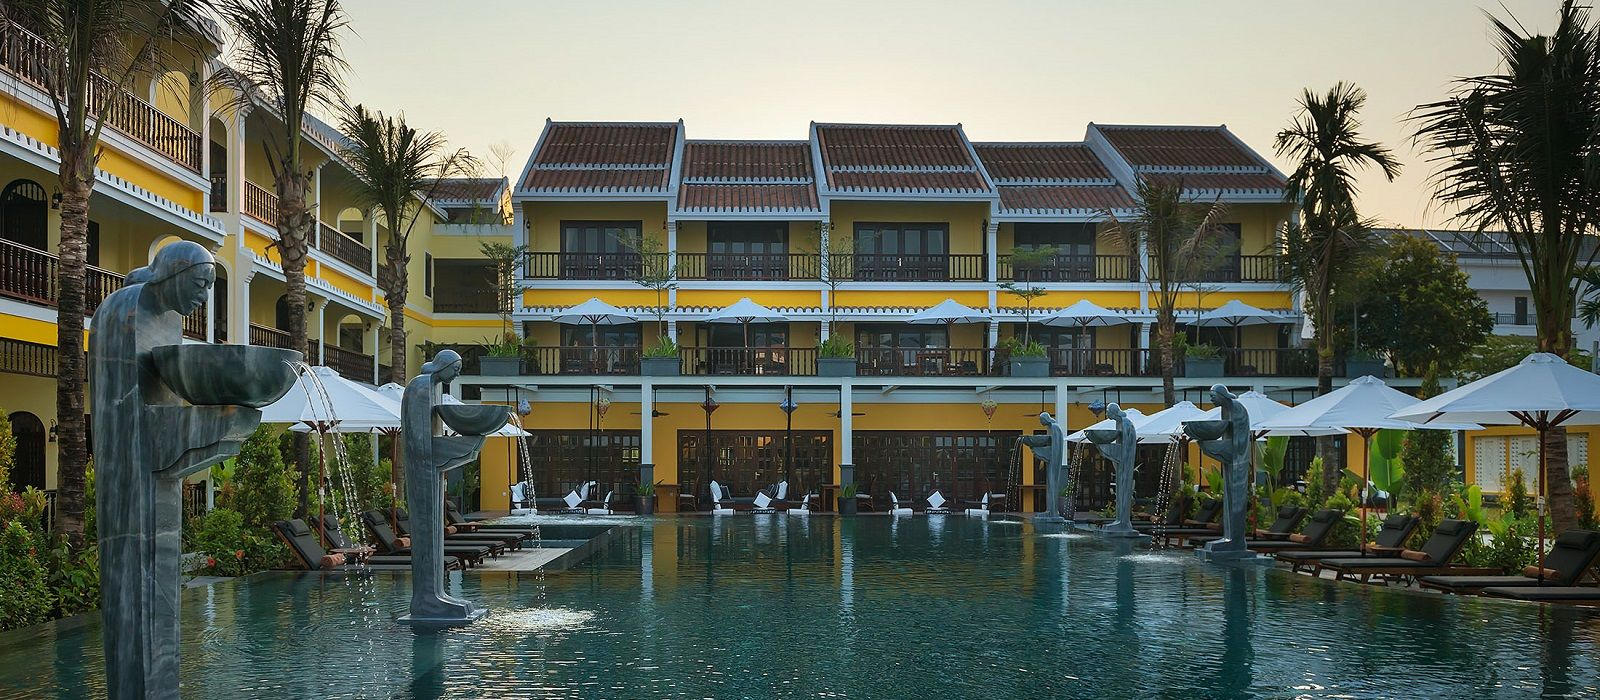 Hotel La Siesta Resorts & Spa Hoi An Vietnam